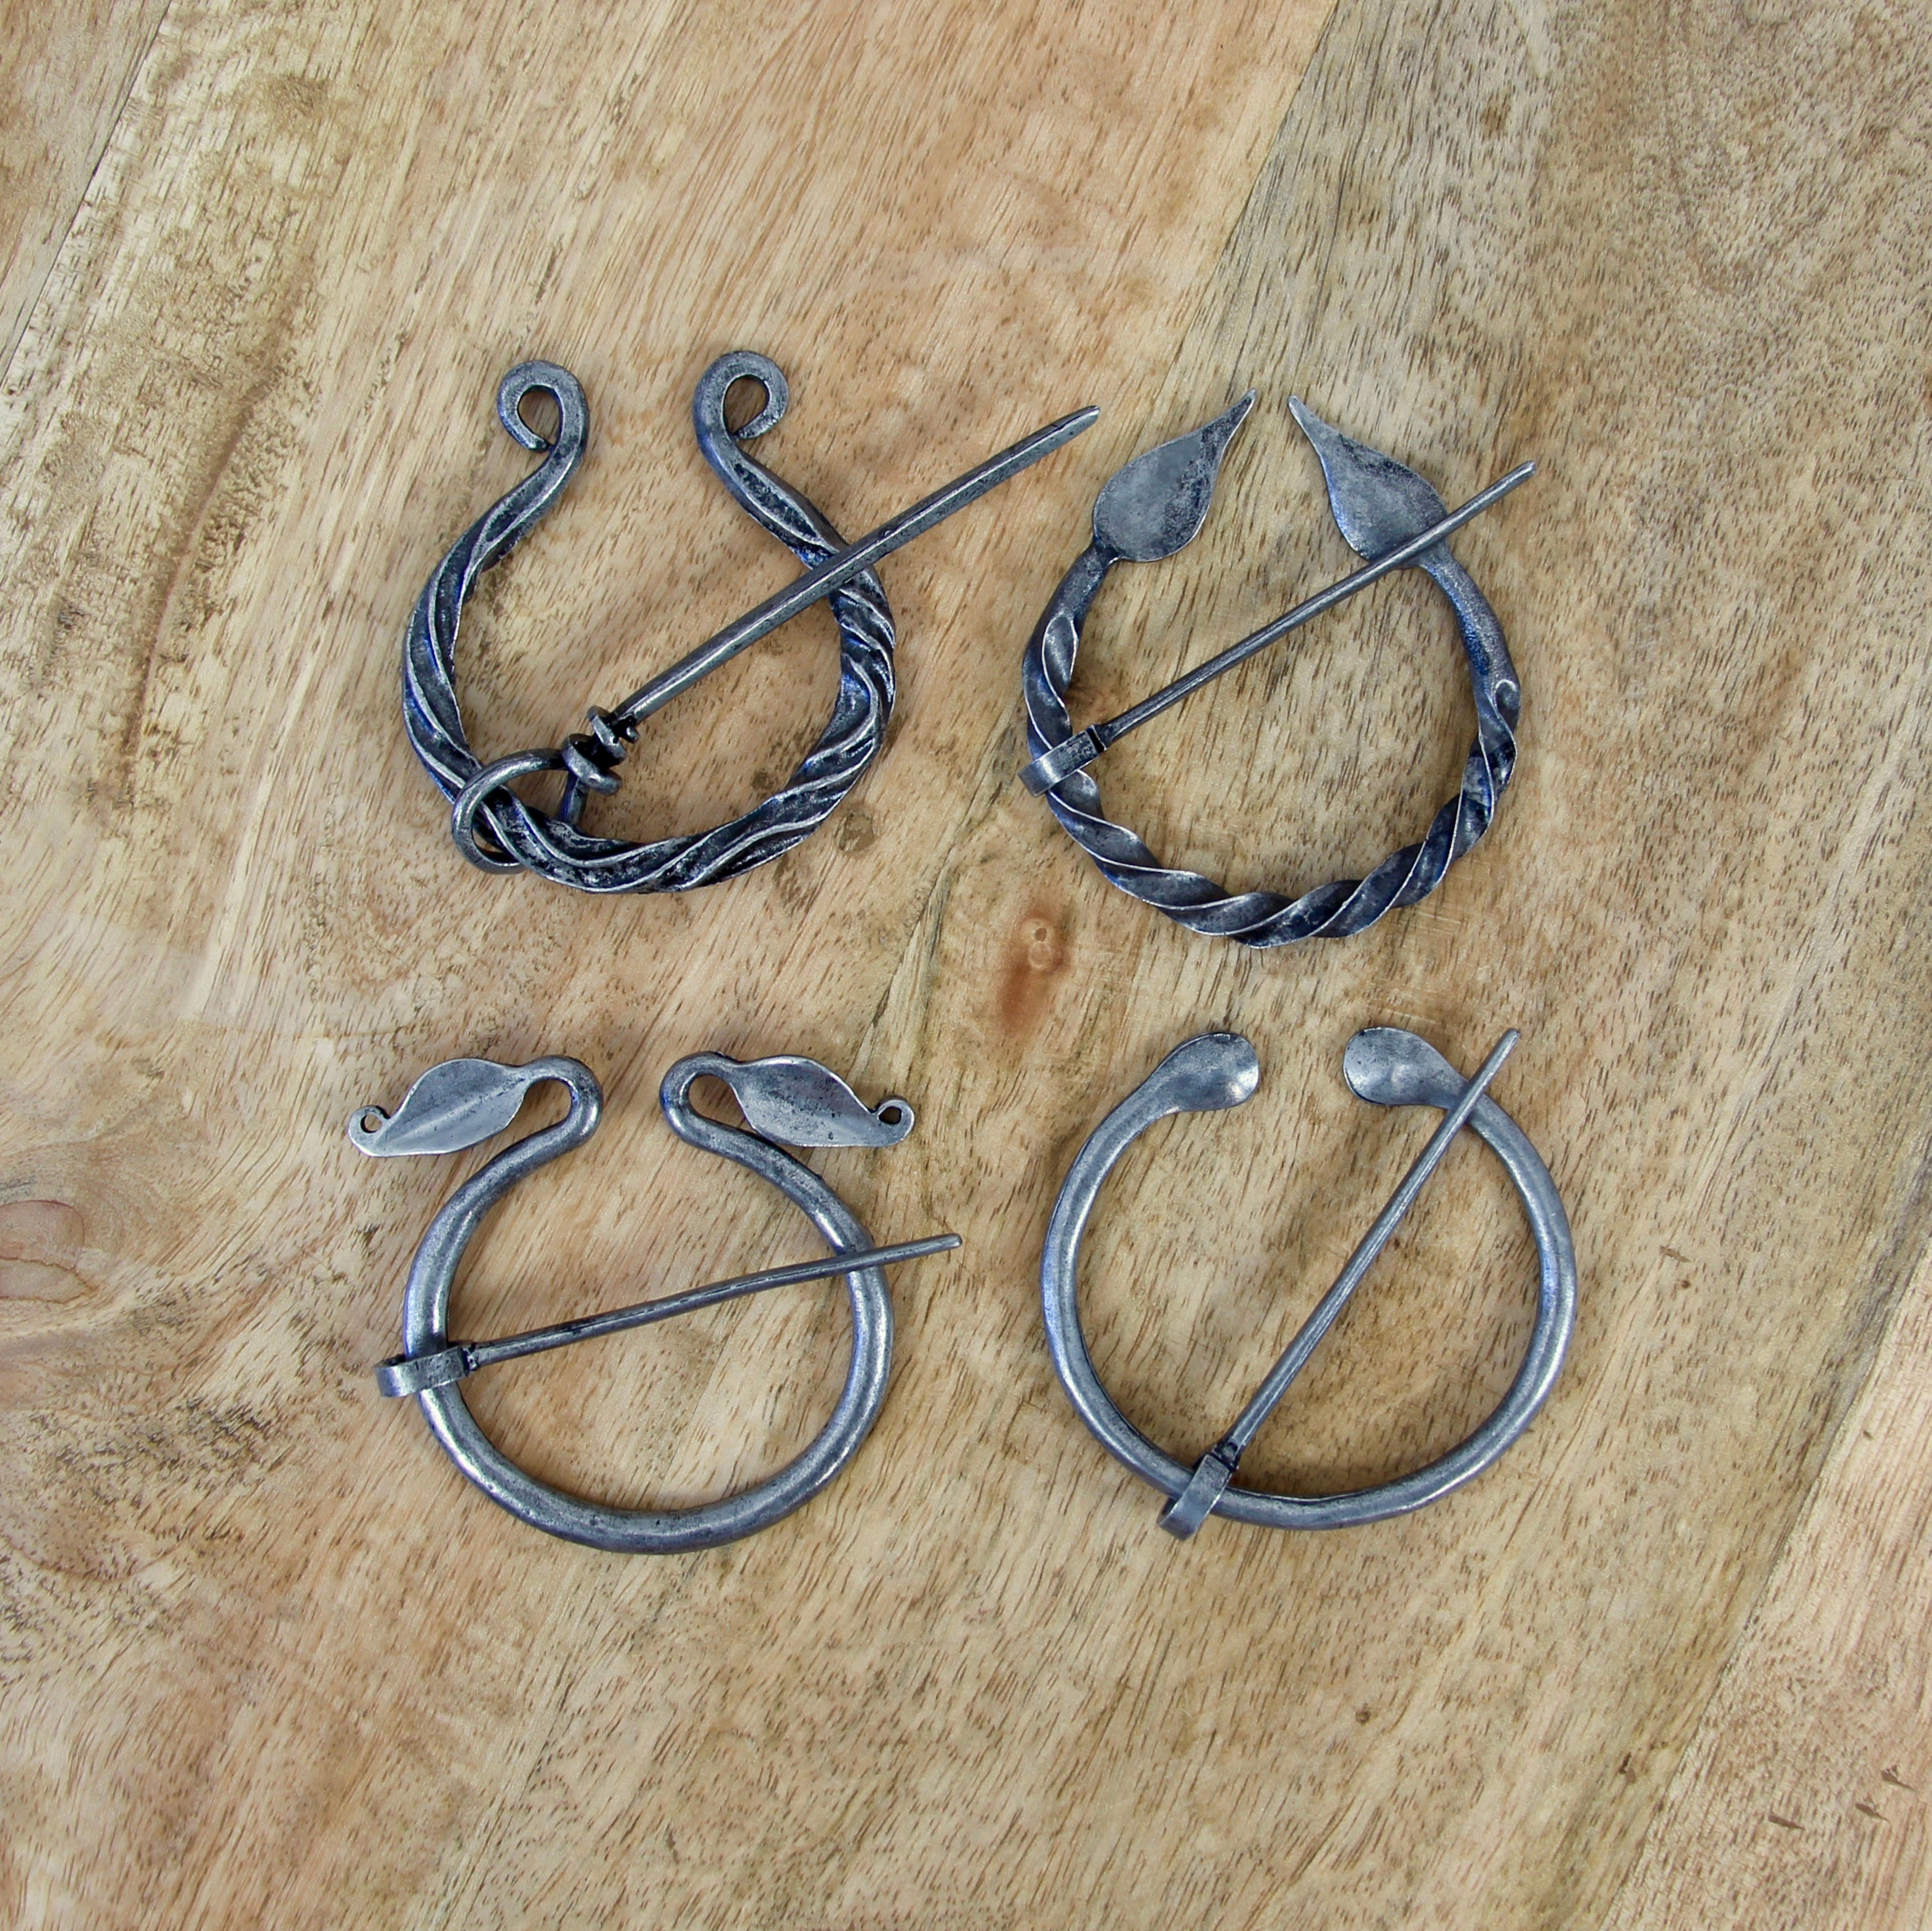 Celtic Antique Looking Twisted Penannular Brooch, Cloak Pin, Scarf Ring